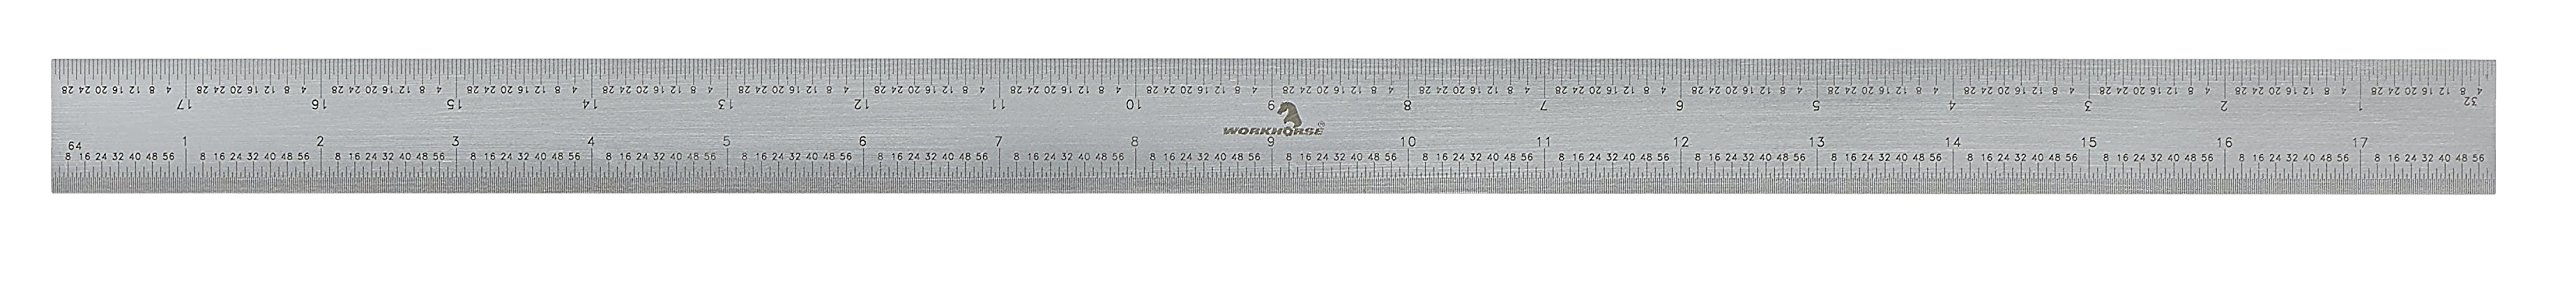 WORKHORSE 3049.13475811 English/Metric Graduations Precision Rigid Rule Blade, 18'' by Workhorse (Image #1)